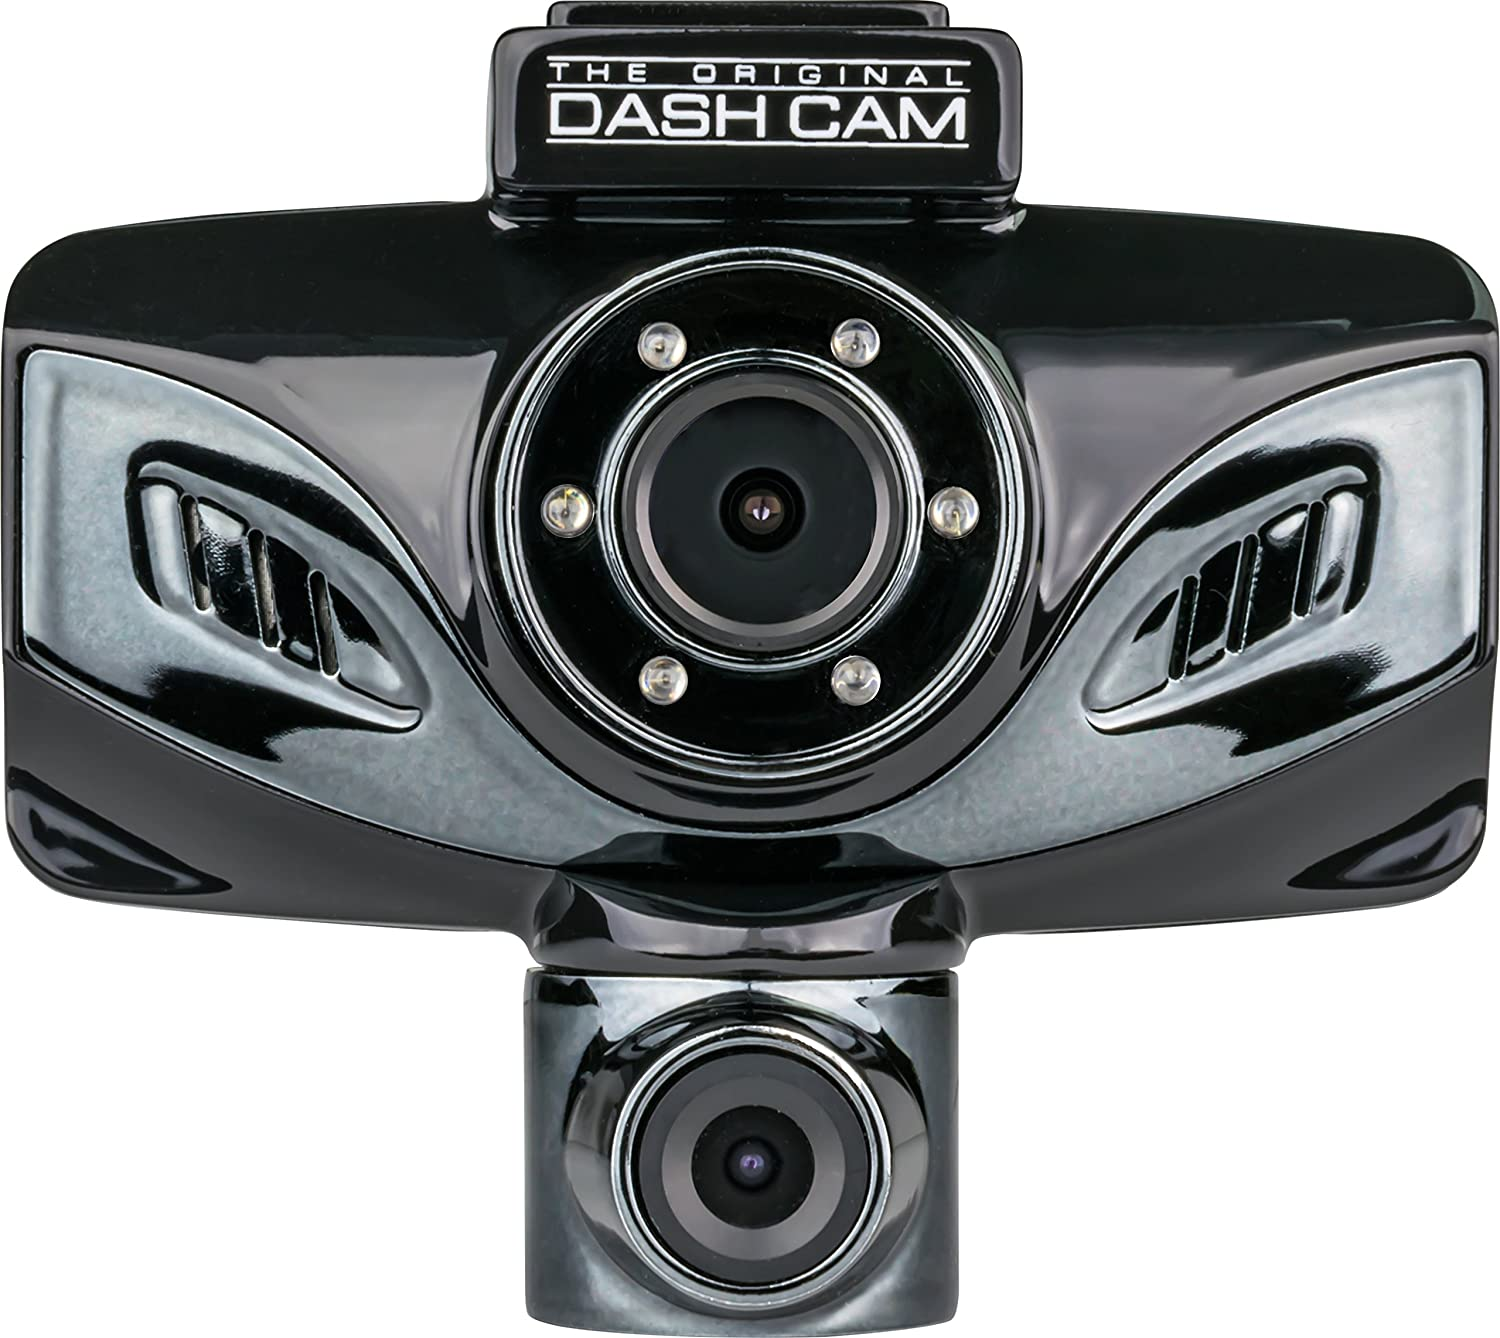 Built-In G-Sensor,Microphone audio recording 4SK909X 5558991750 1080P HD resolution with 130 degree camera angles Motion detection sensor Dashboard Cam TwisterX adjustable dual camera device that twists 320 degrees